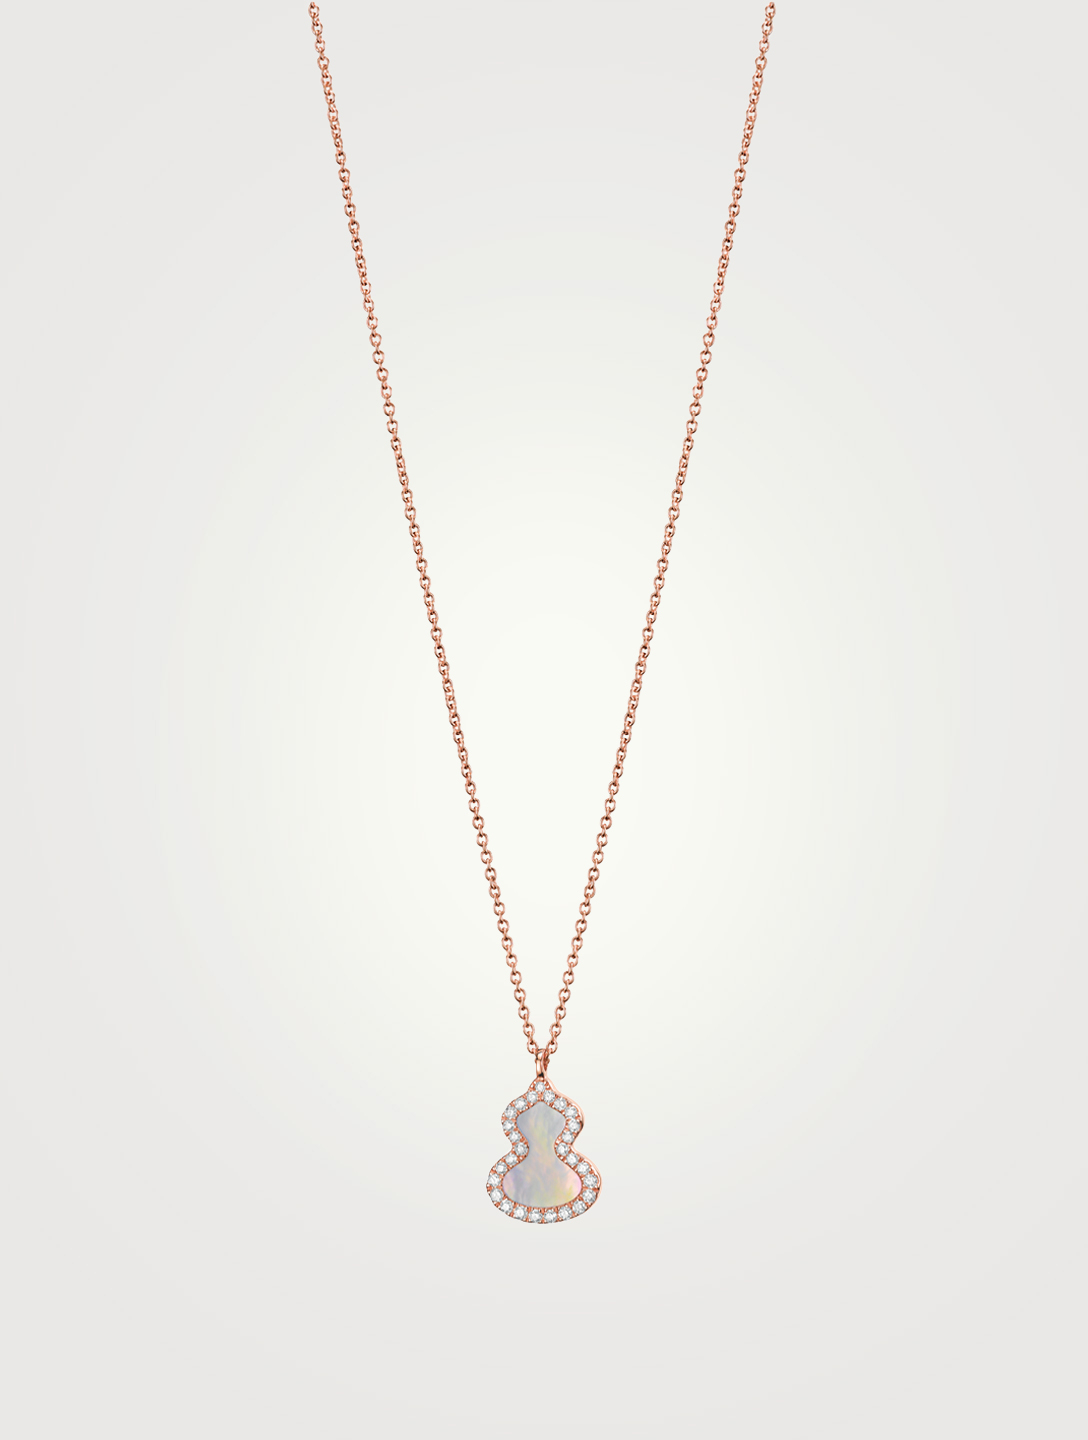 QEELIN Petite Wulu 18K Rose Gold Necklace With Diamonds And Mother Of Pearl Women's Metallic